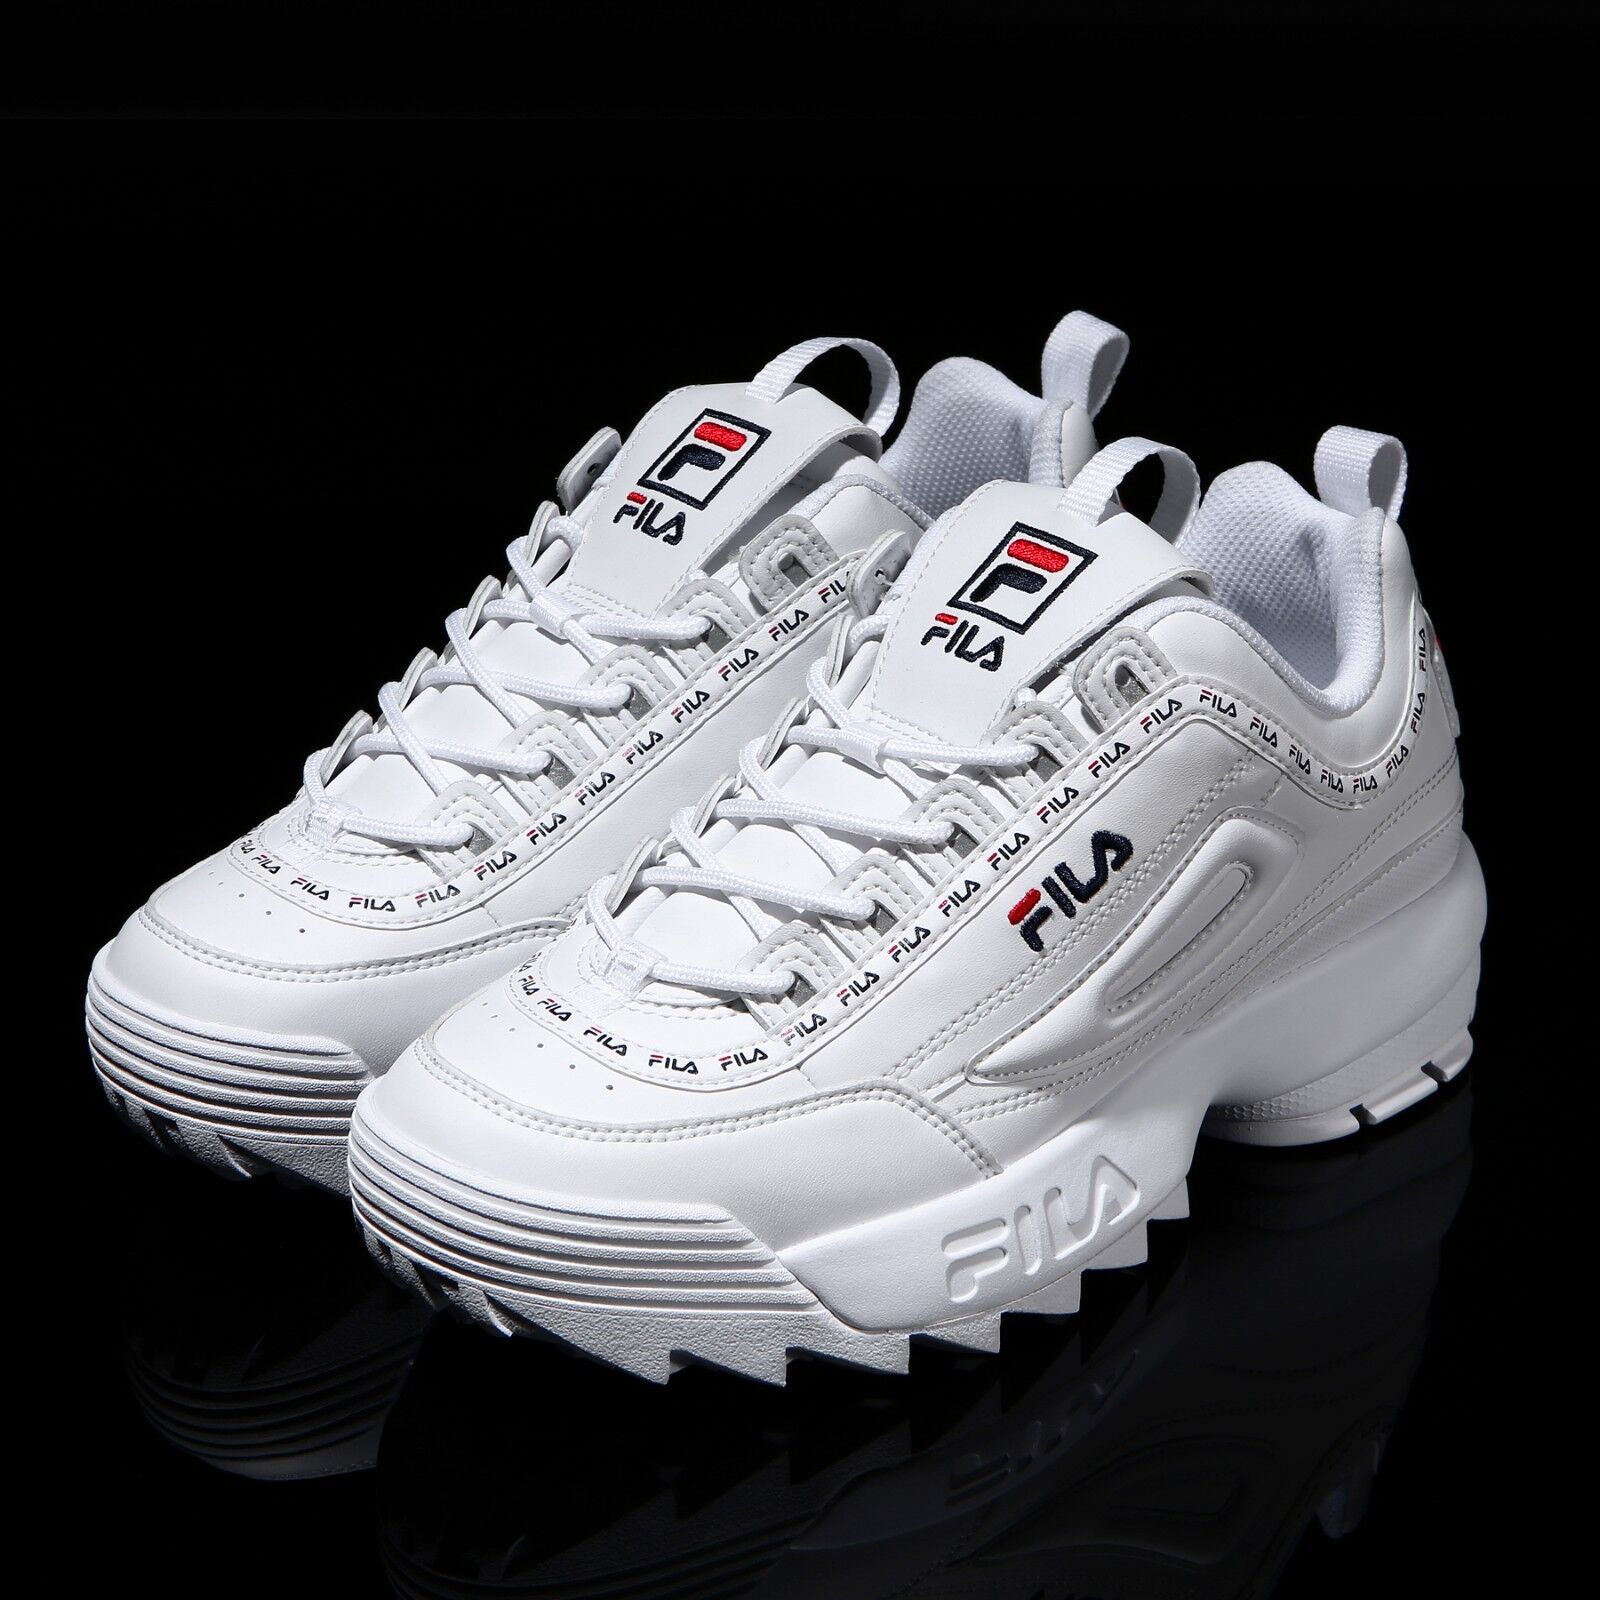 FILA Disruptor II 2 White Tapey Tape shoes Unisex Size FS1HTA3091X_WWT